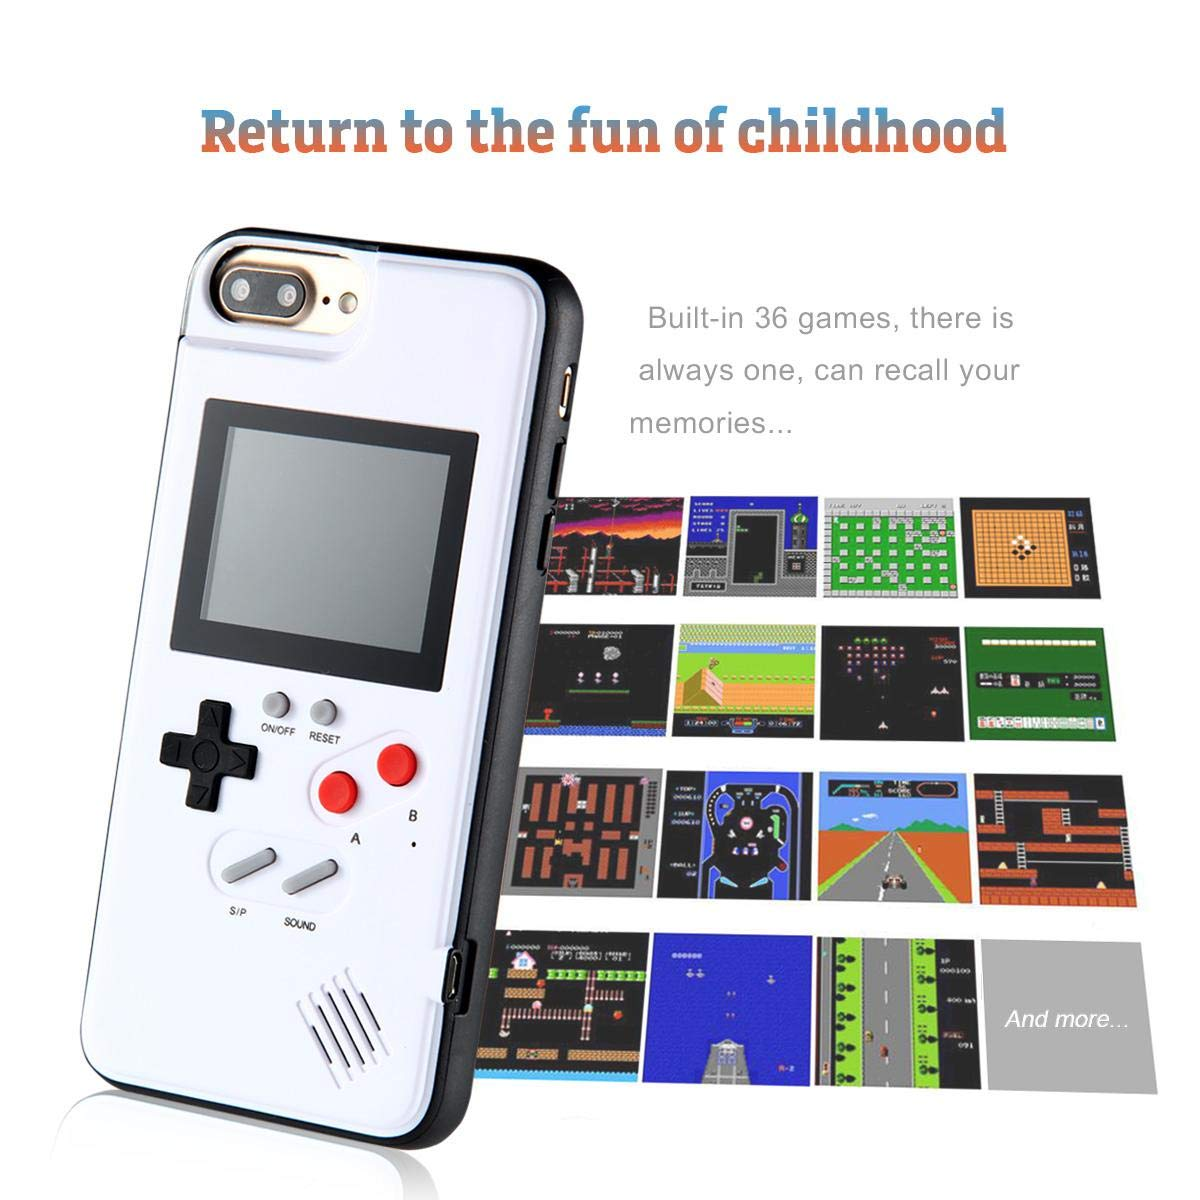 Womdee Game Console iPhone Case, Handheld Game Console Case Cover with 36 Games Phone Case (iPhone 6p/7p/8p, White) by Womdee (Image #7)